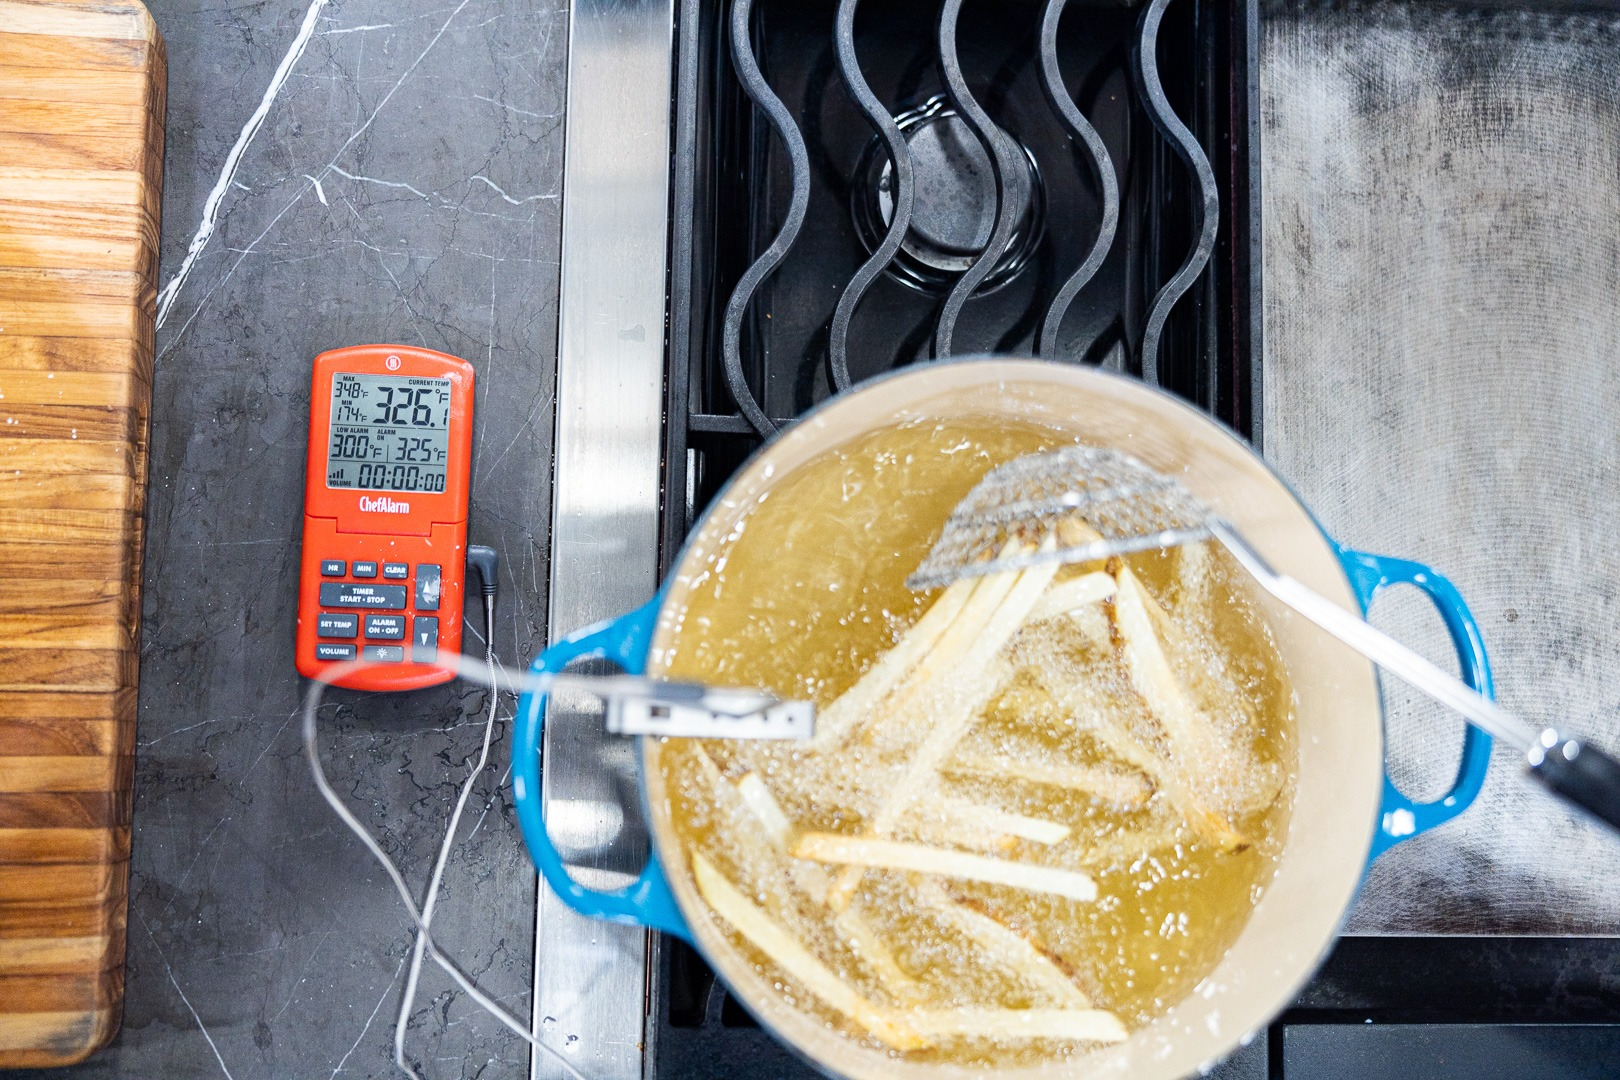 Temping the oil at 325°F